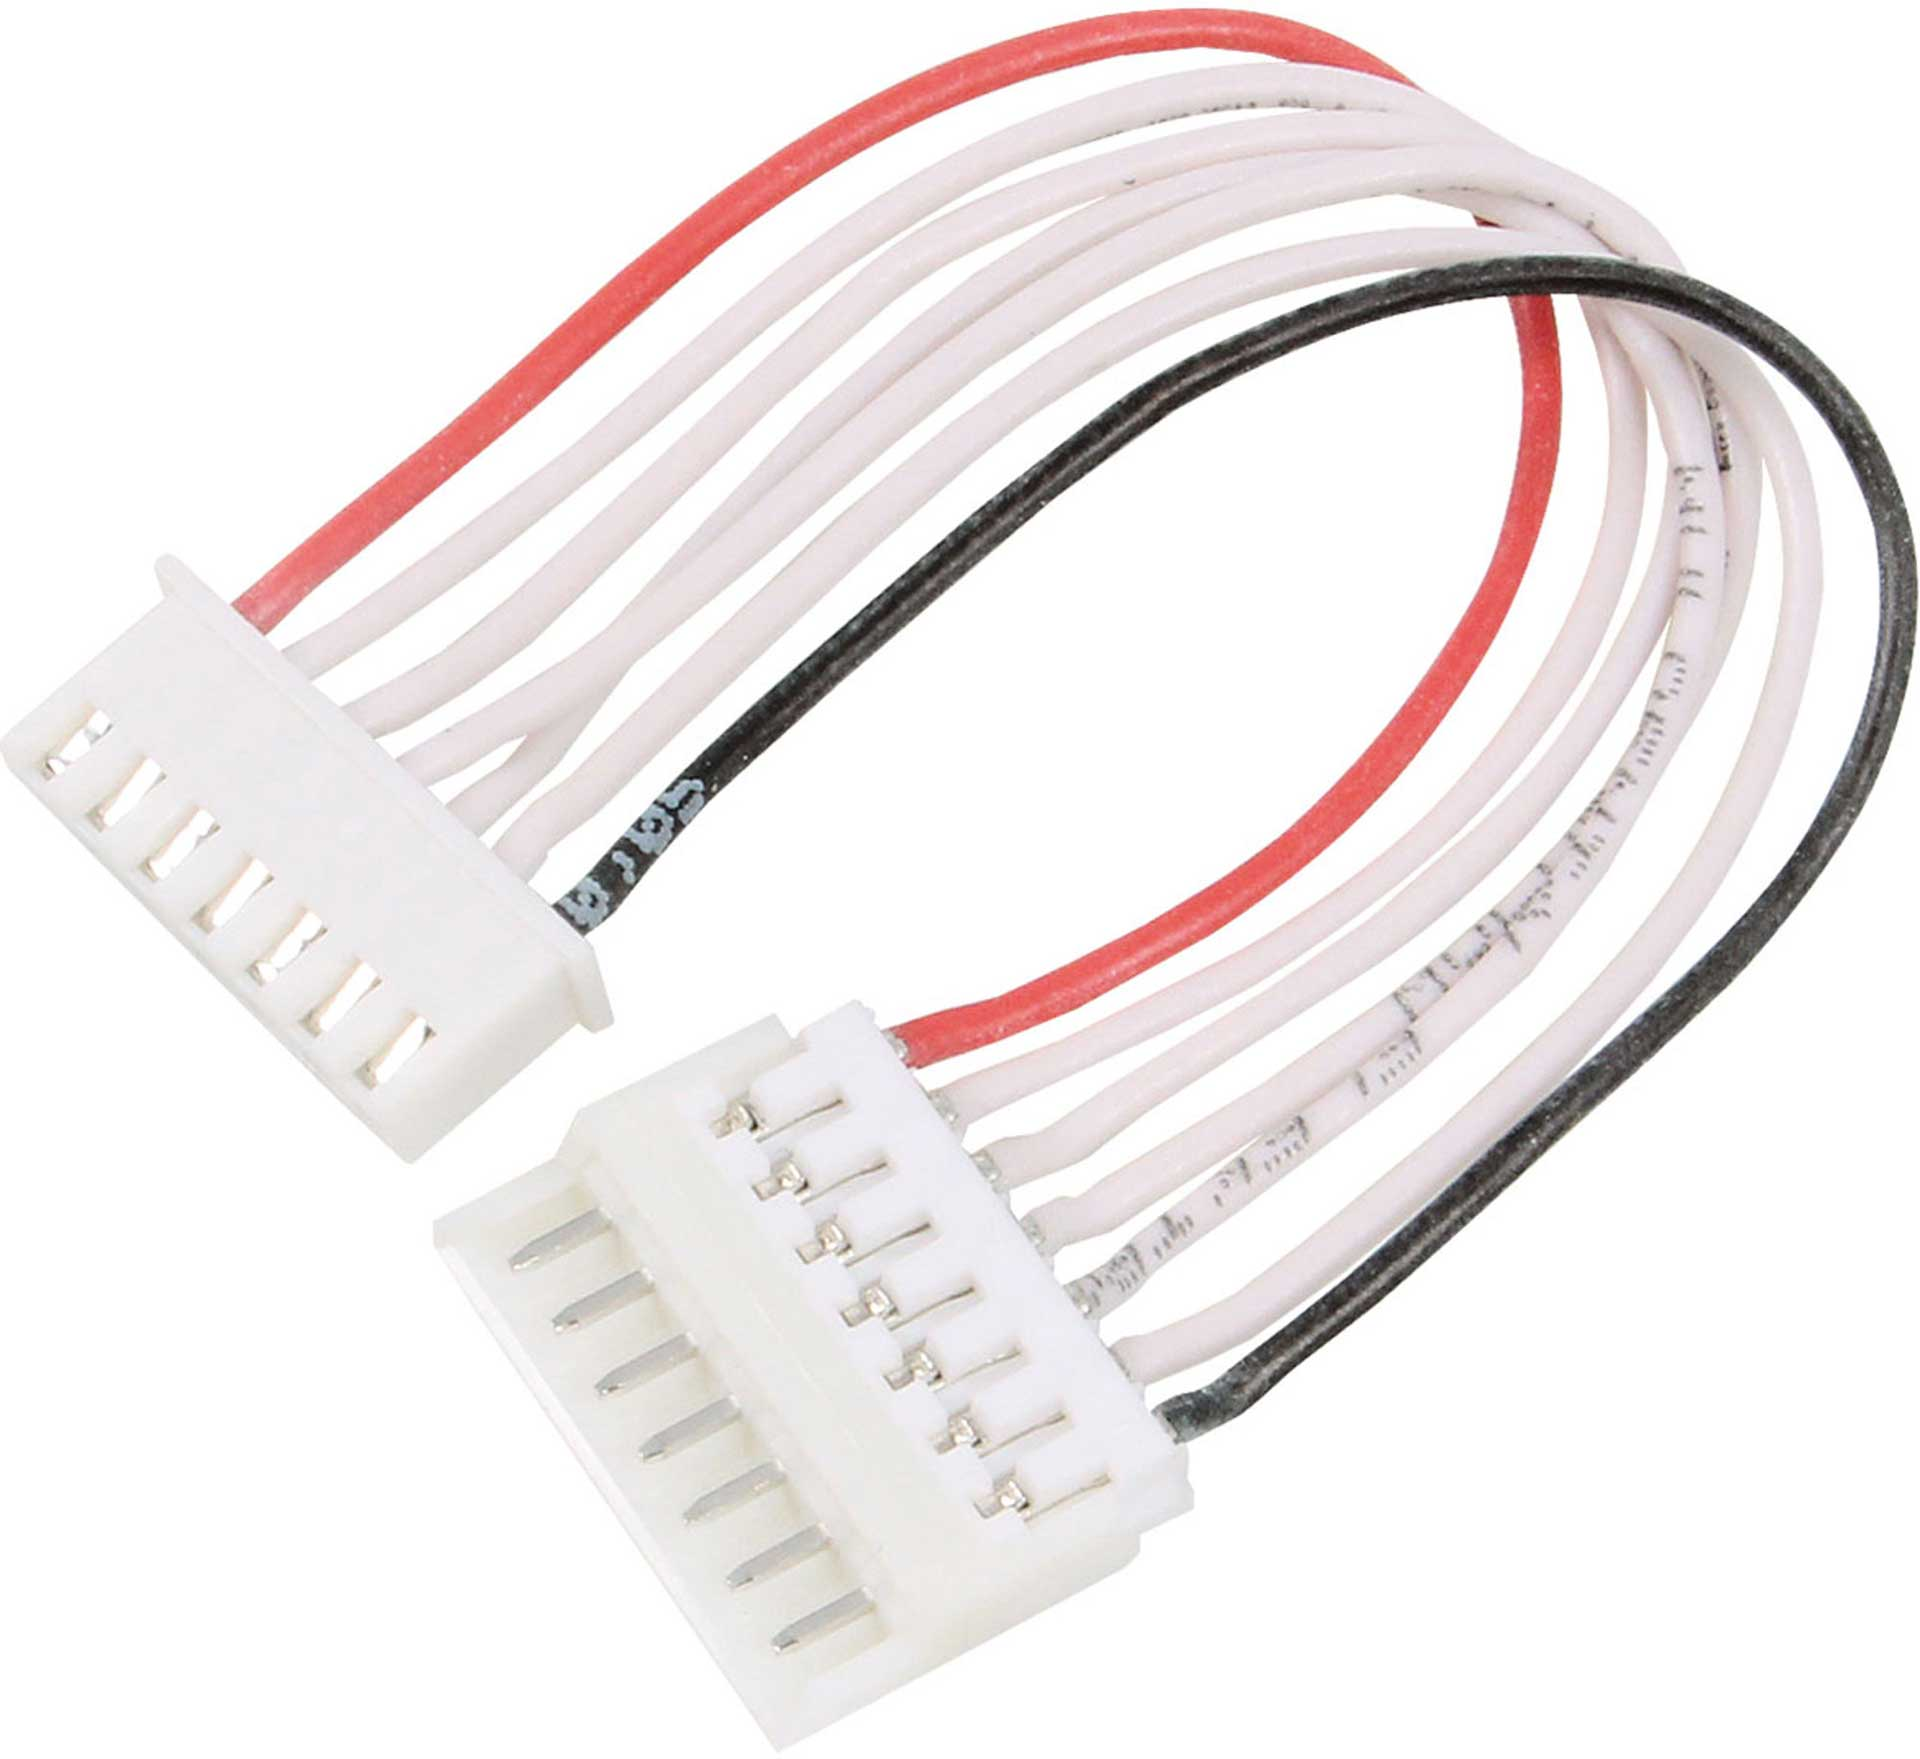 MODELLBAU LINDINGER SENSOR ADAPTER CABLE EH TO XH 6S SILICONE, 10CM, 7-PIN, 0,25QMM, 1PCS.